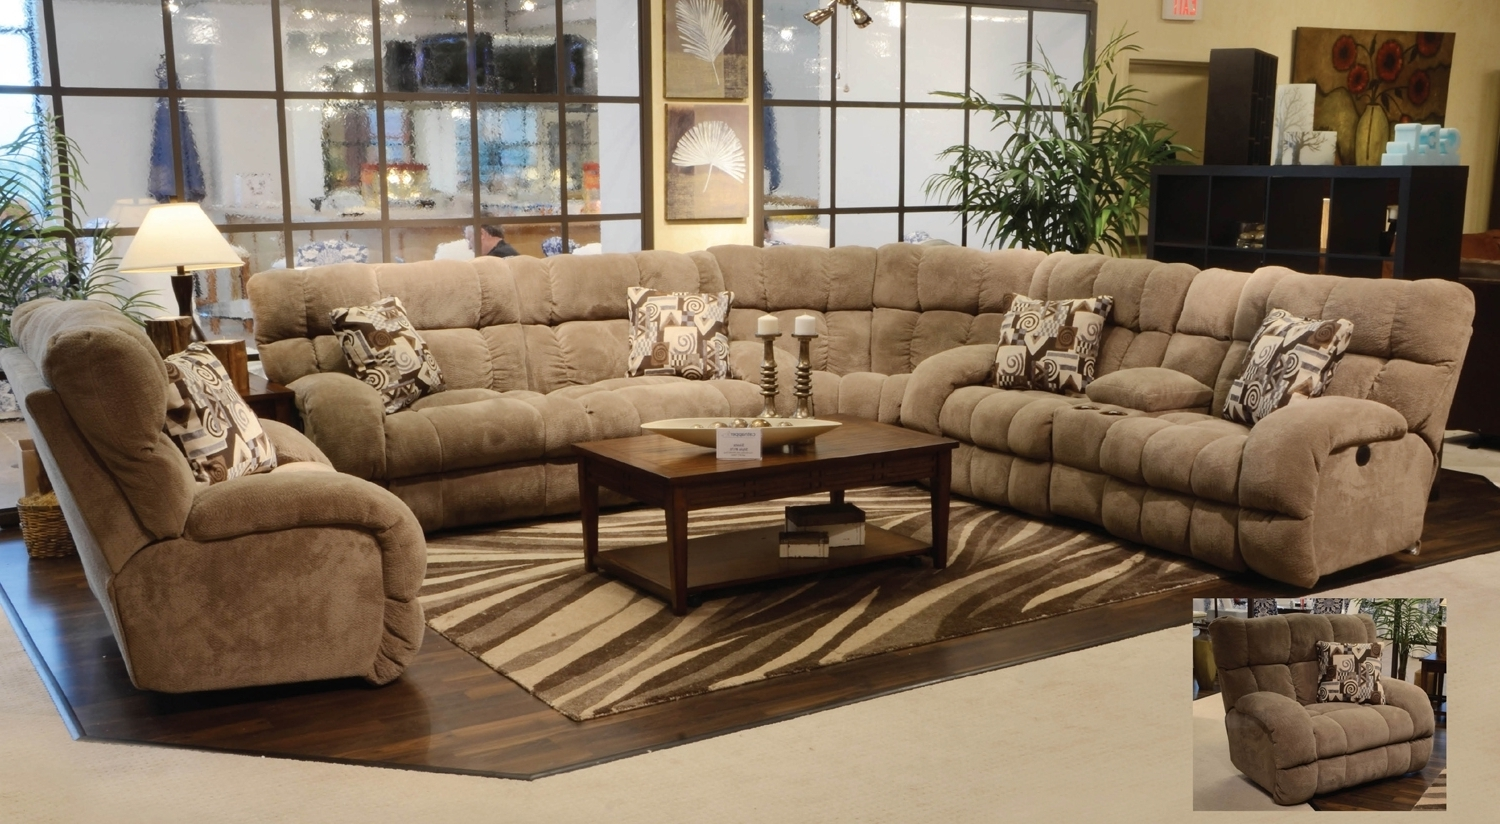 Sofa : Fascinating Large Sectional Sofa Modern Sofas Large In Most Current Huge Sofas (View 9 of 15)